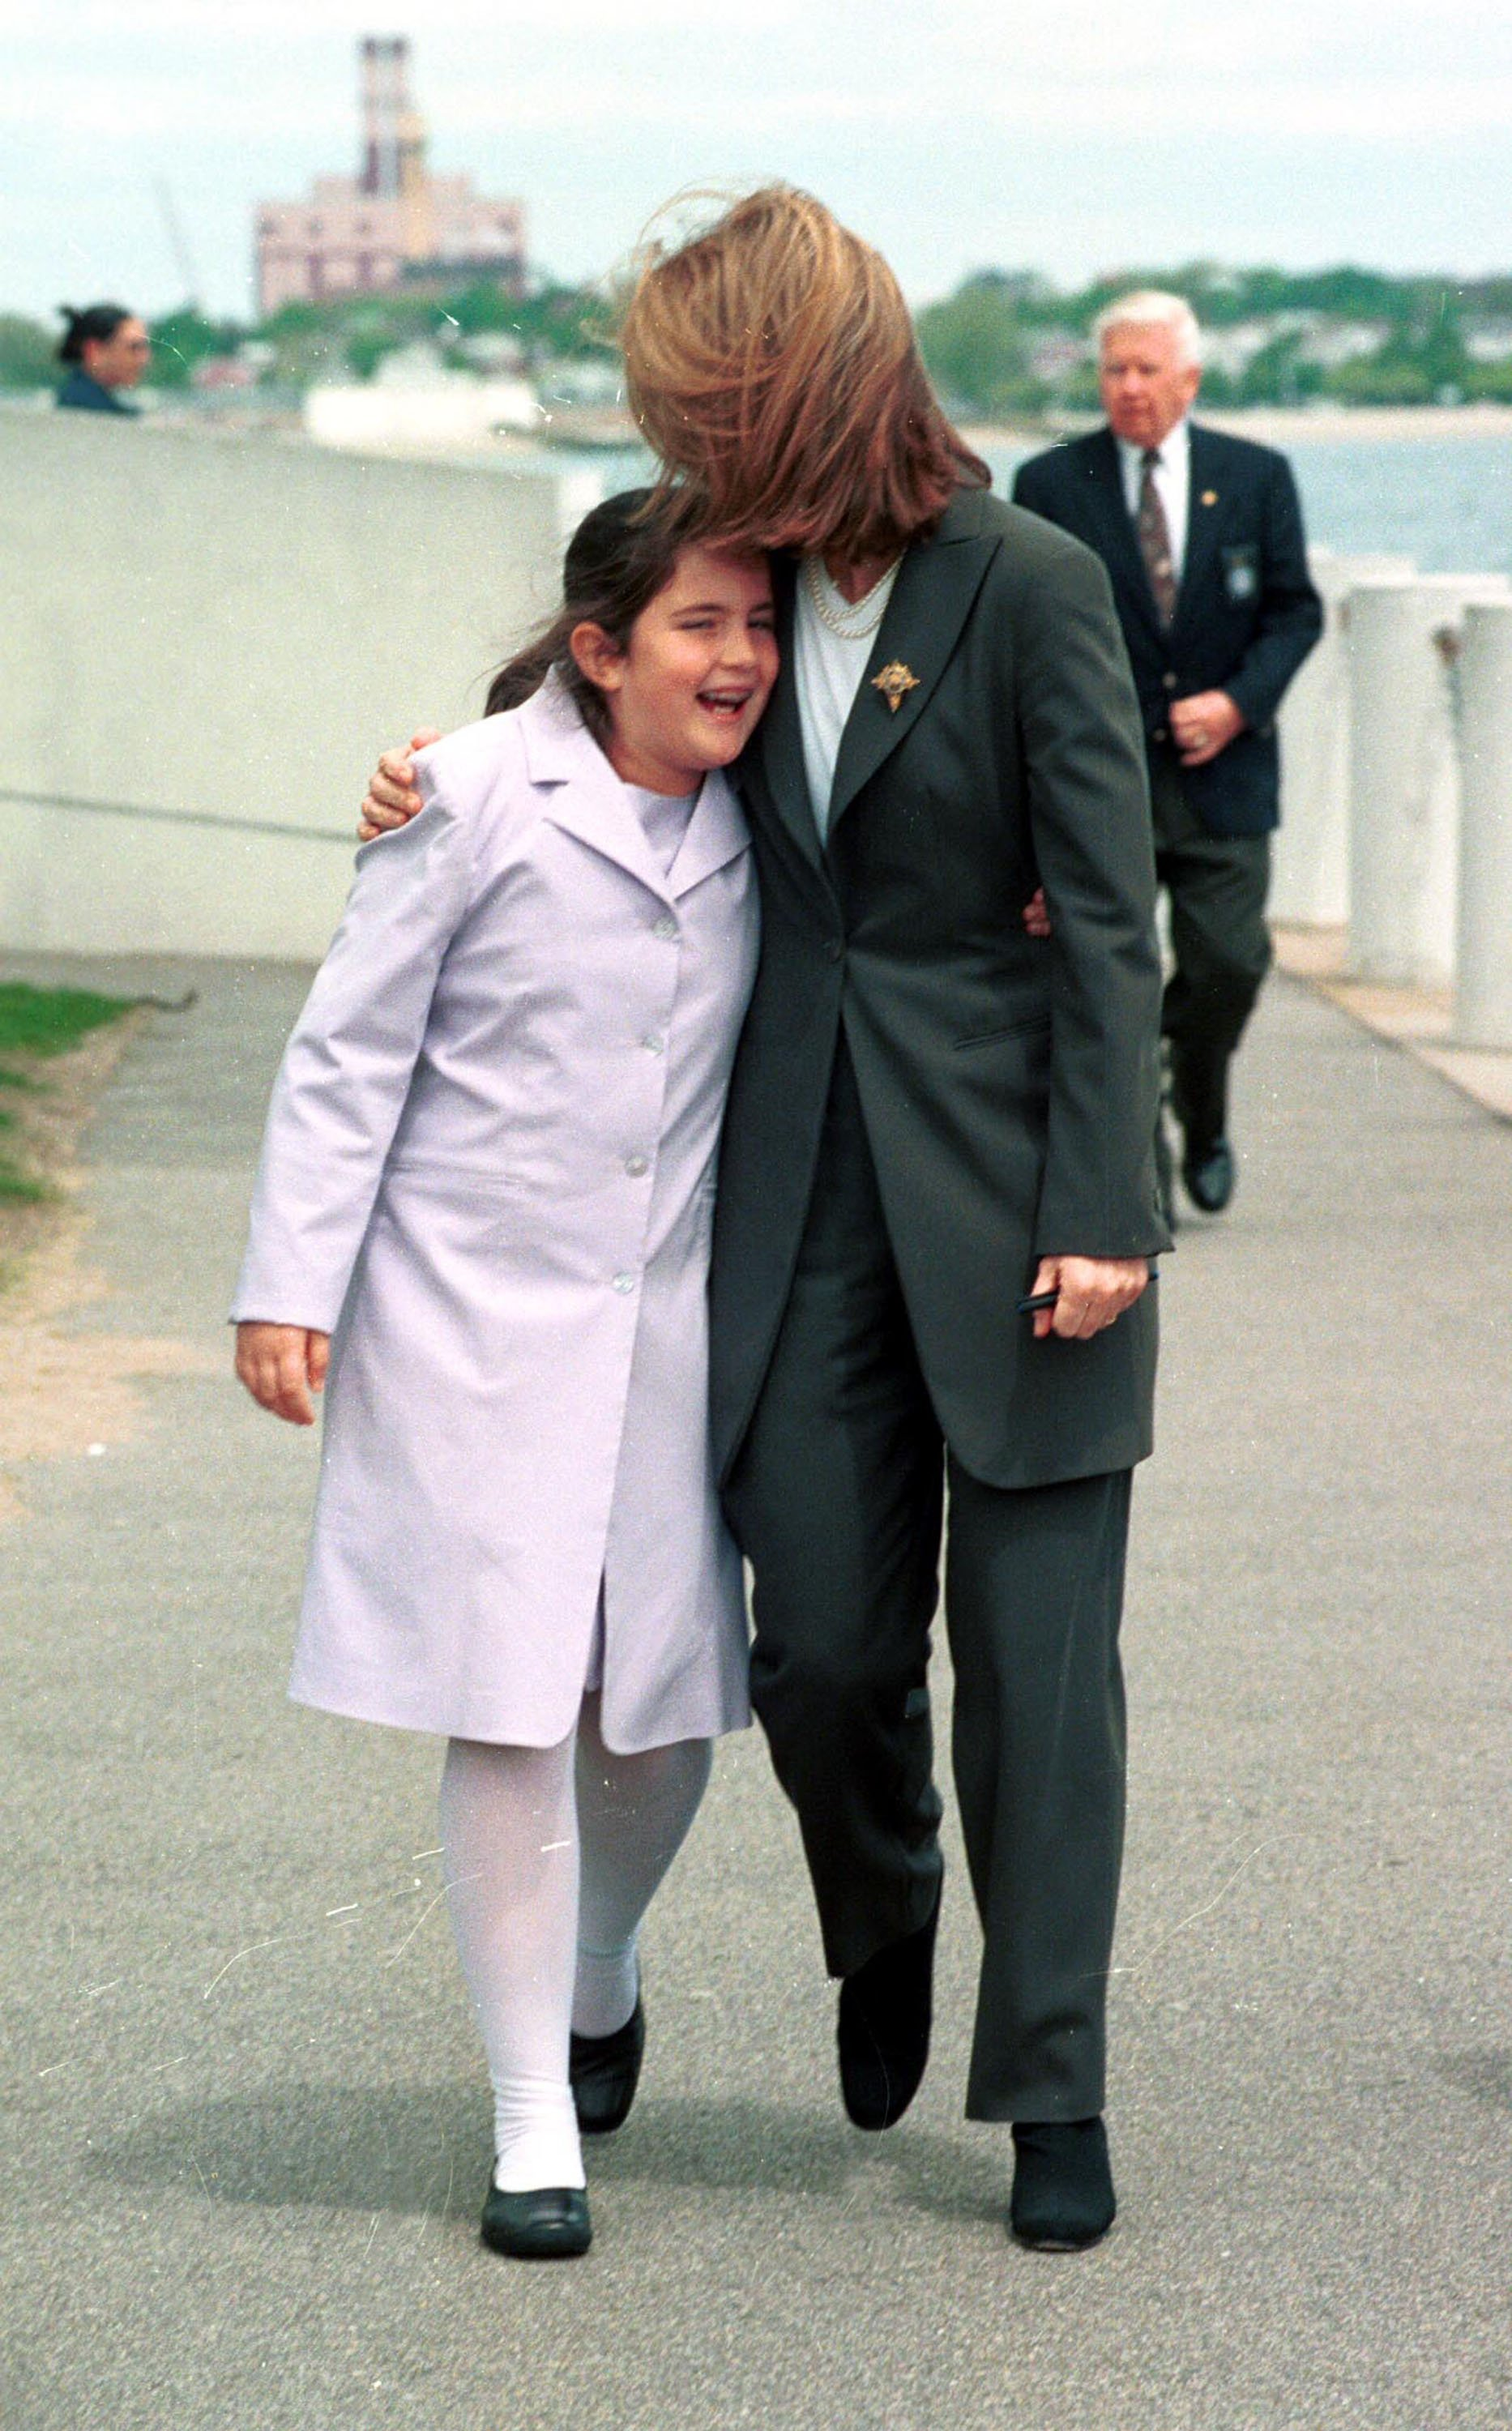 Caroline Kennedy and Tatiana Schlossberg outside the JFK Library on May 22, 2000 in Boston | Source: Getty Images